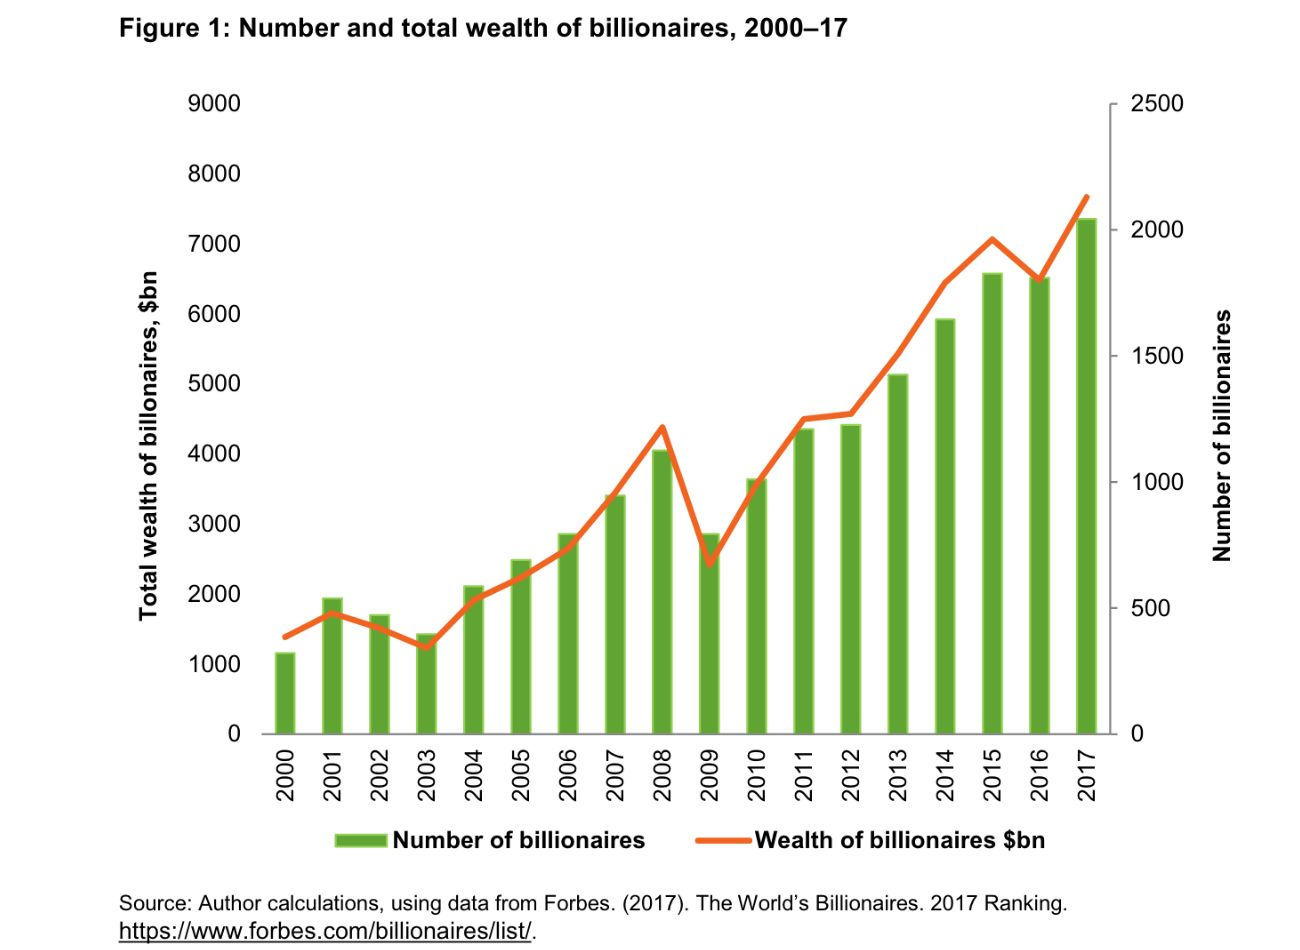 Number and total wealth of billionaires